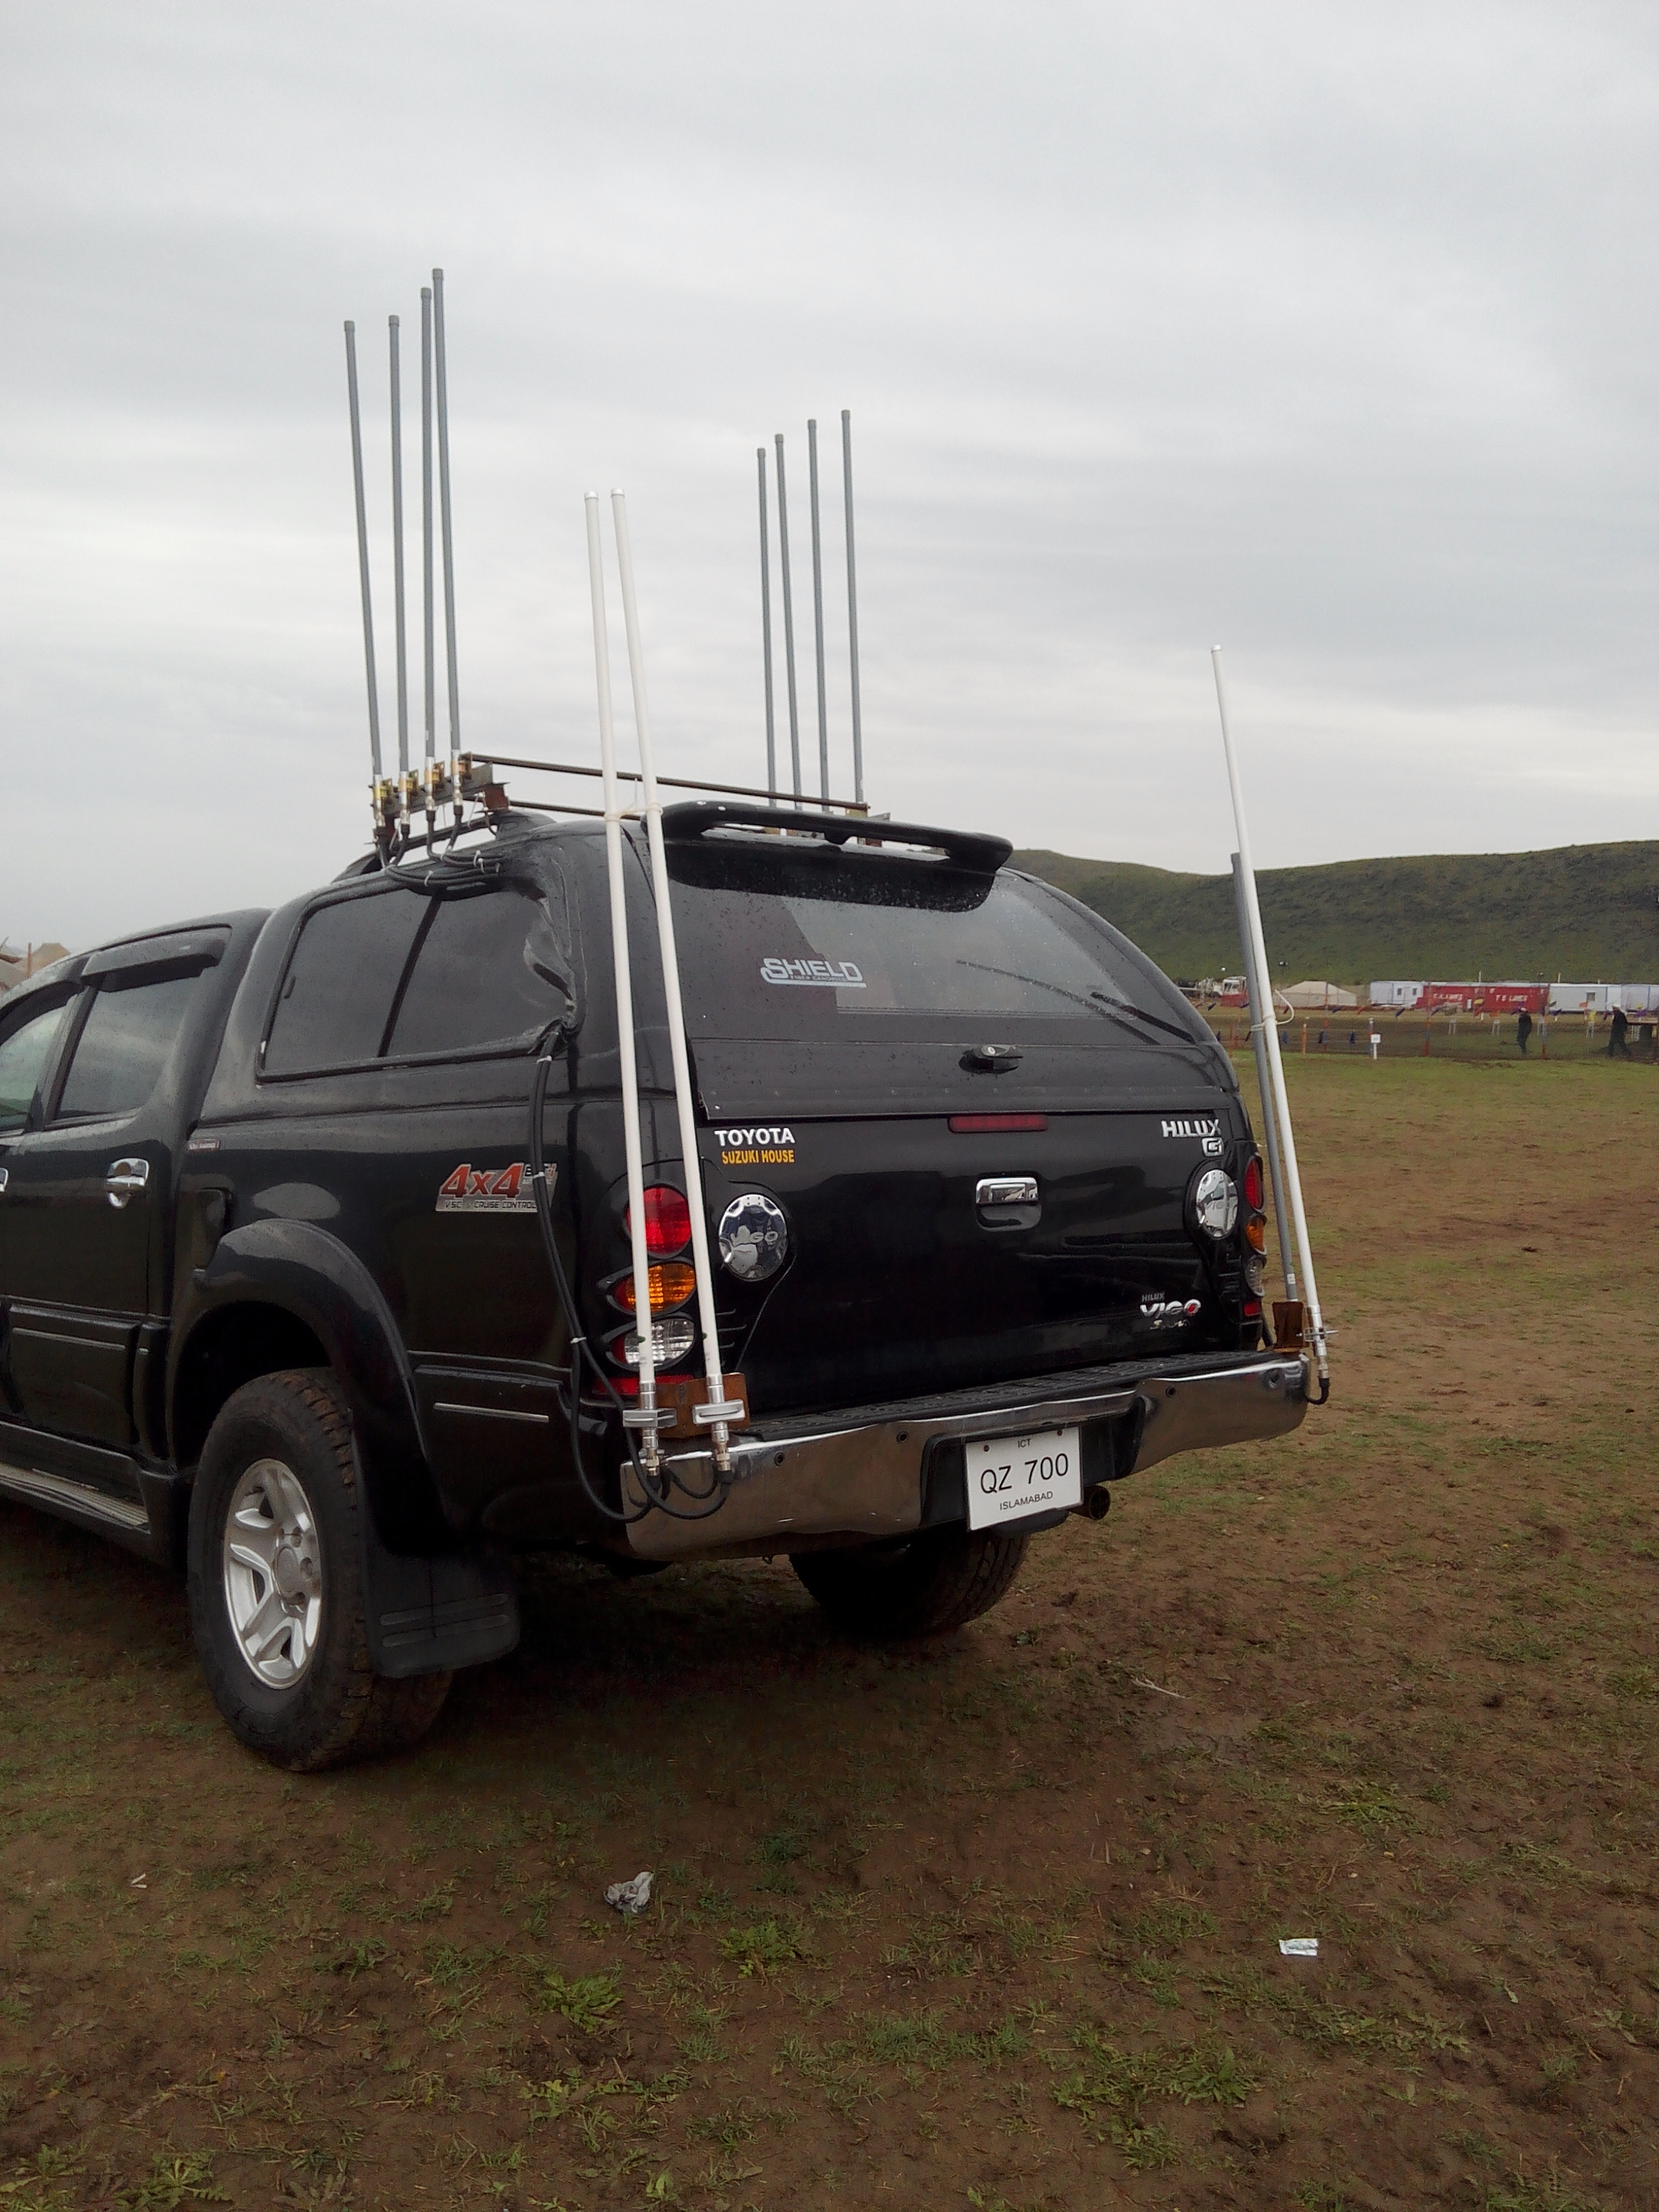 Convoy jamming system email - jamming alarm system solution